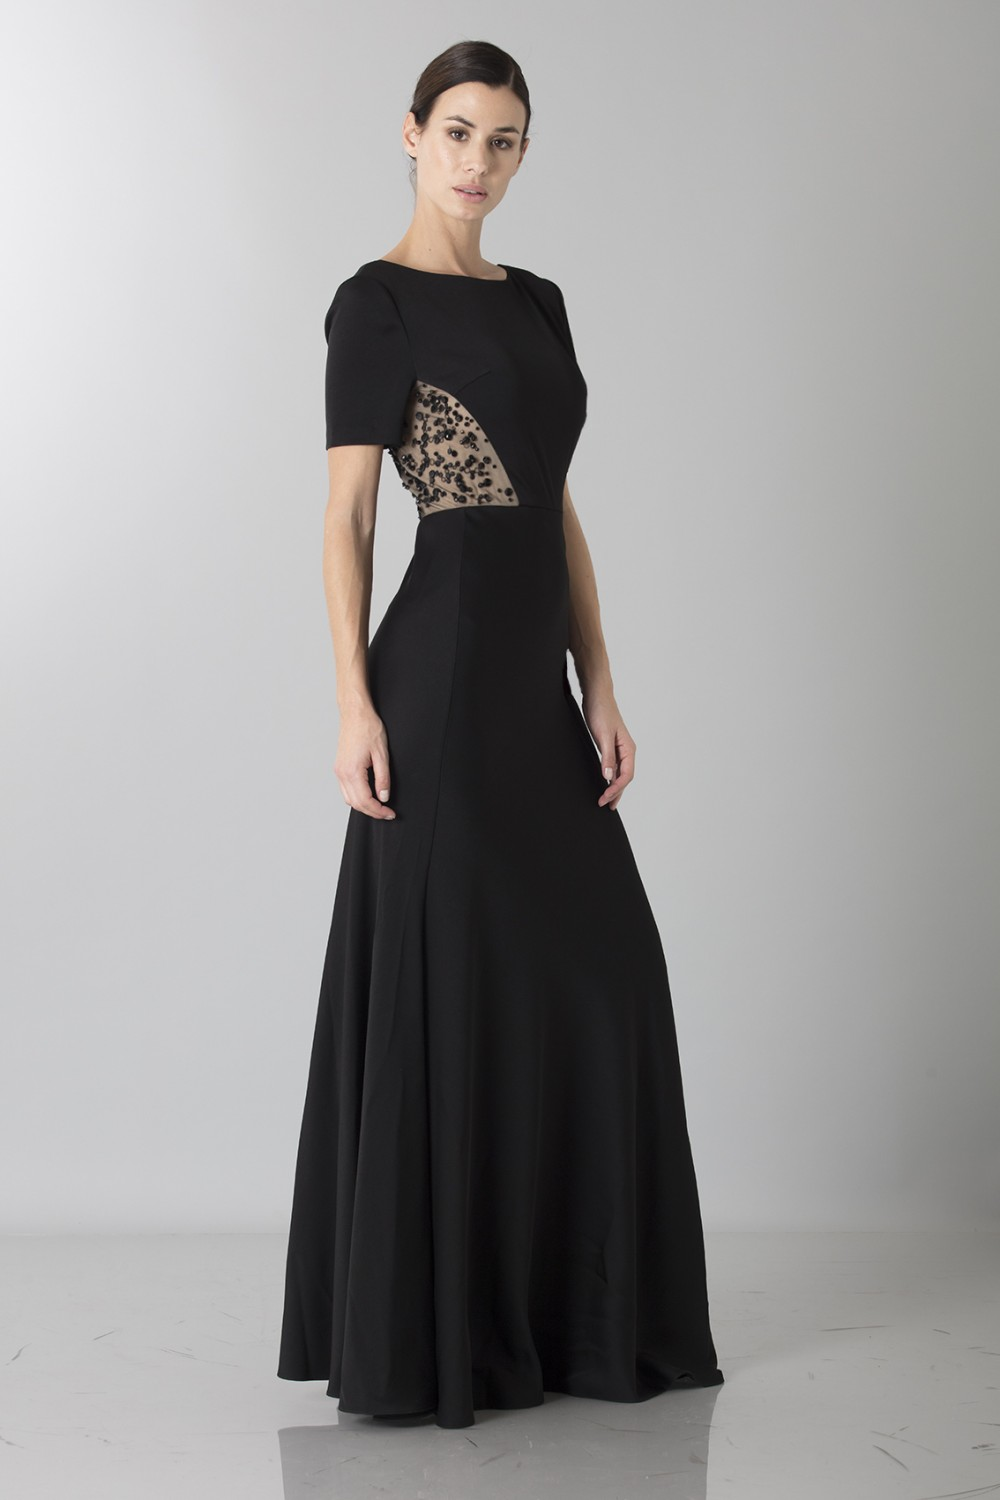 Short sleeve dress with side lace